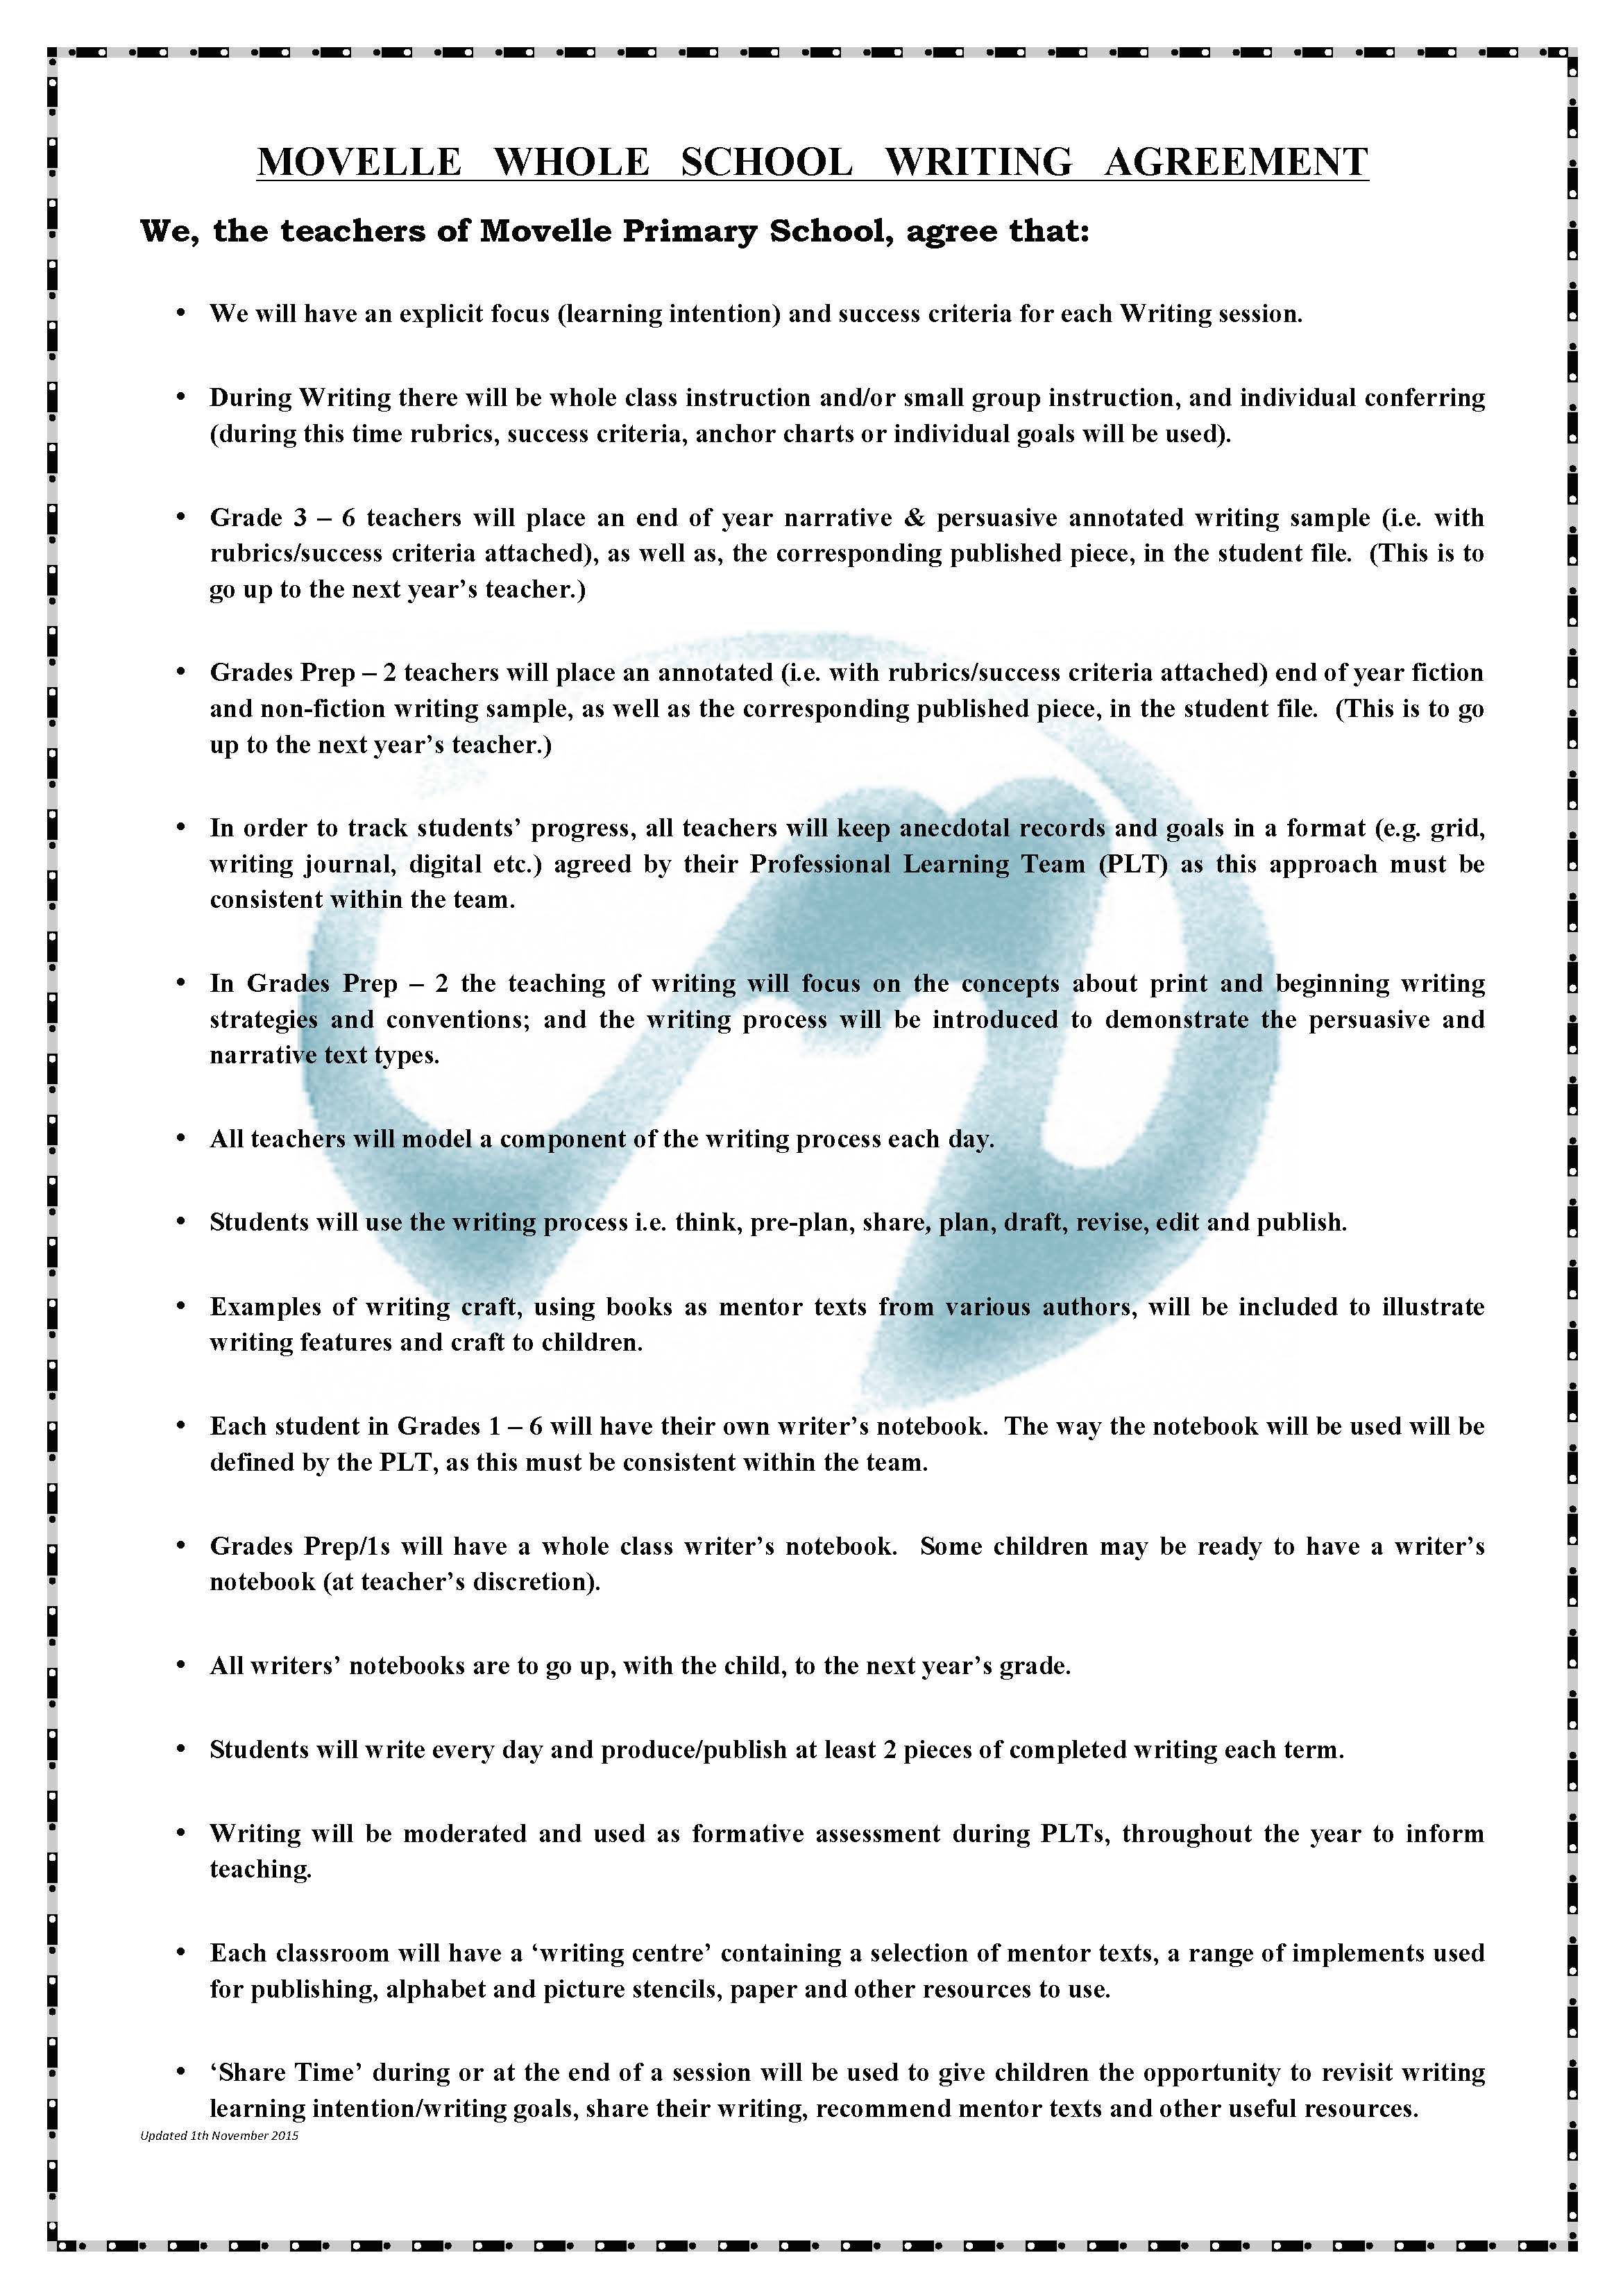 school curriculum agreements writing whole school agreement